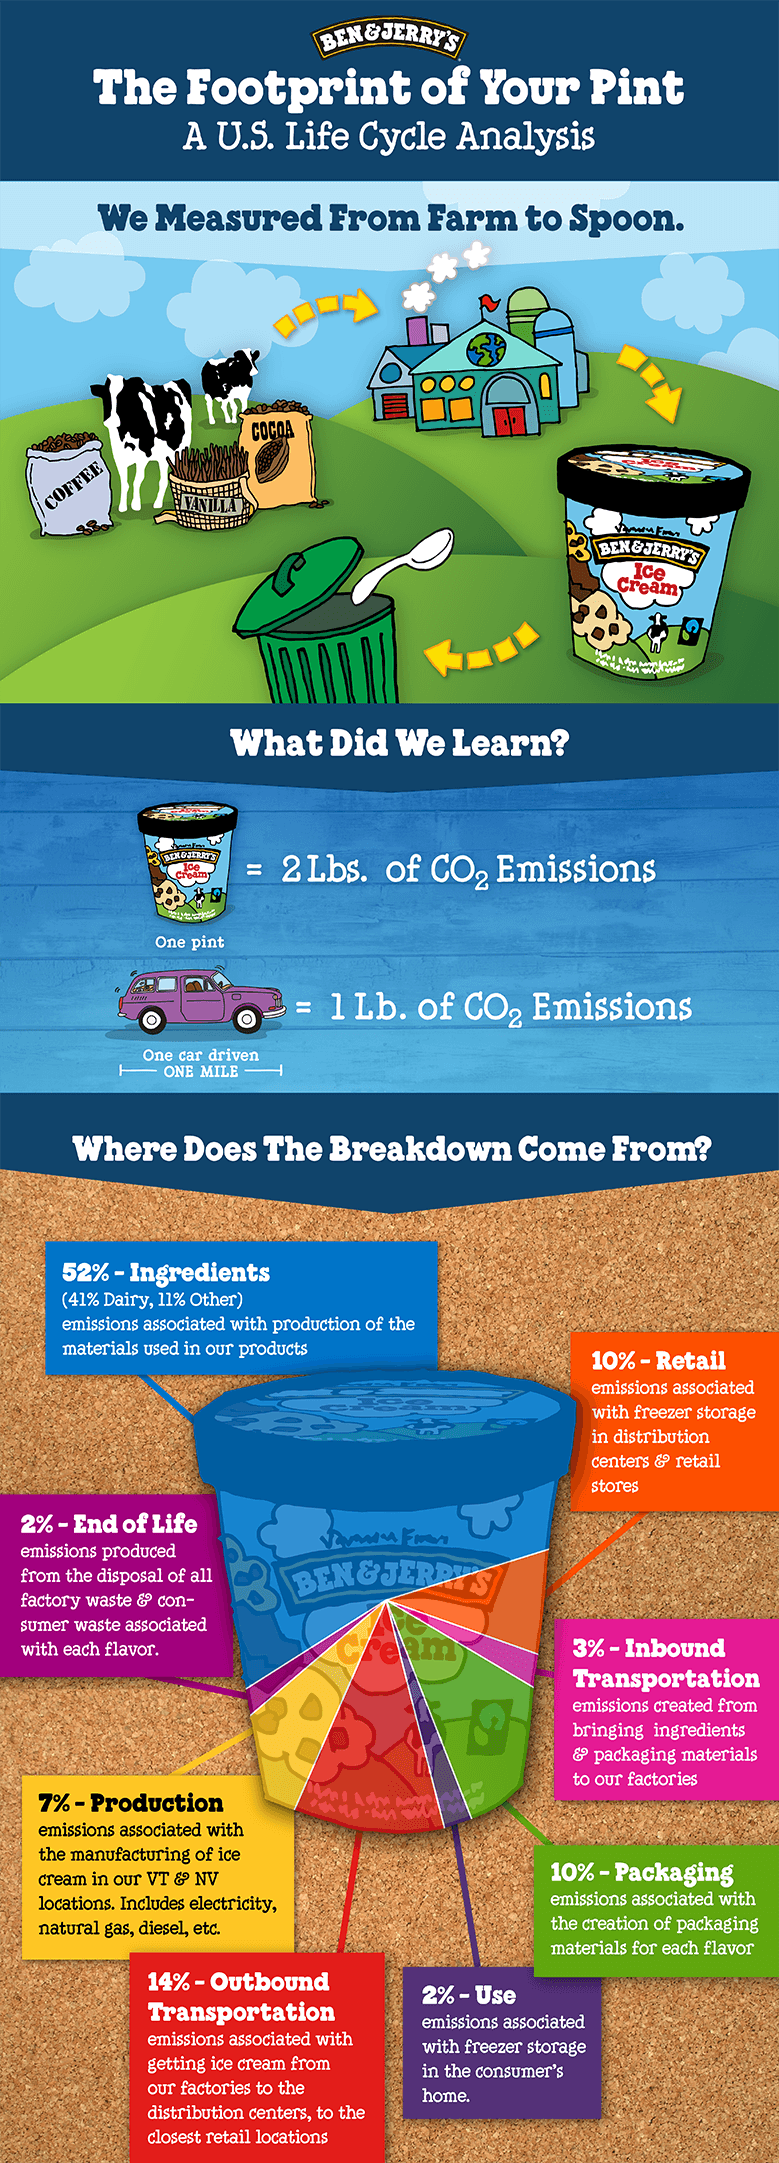 ben and jerry case study summary